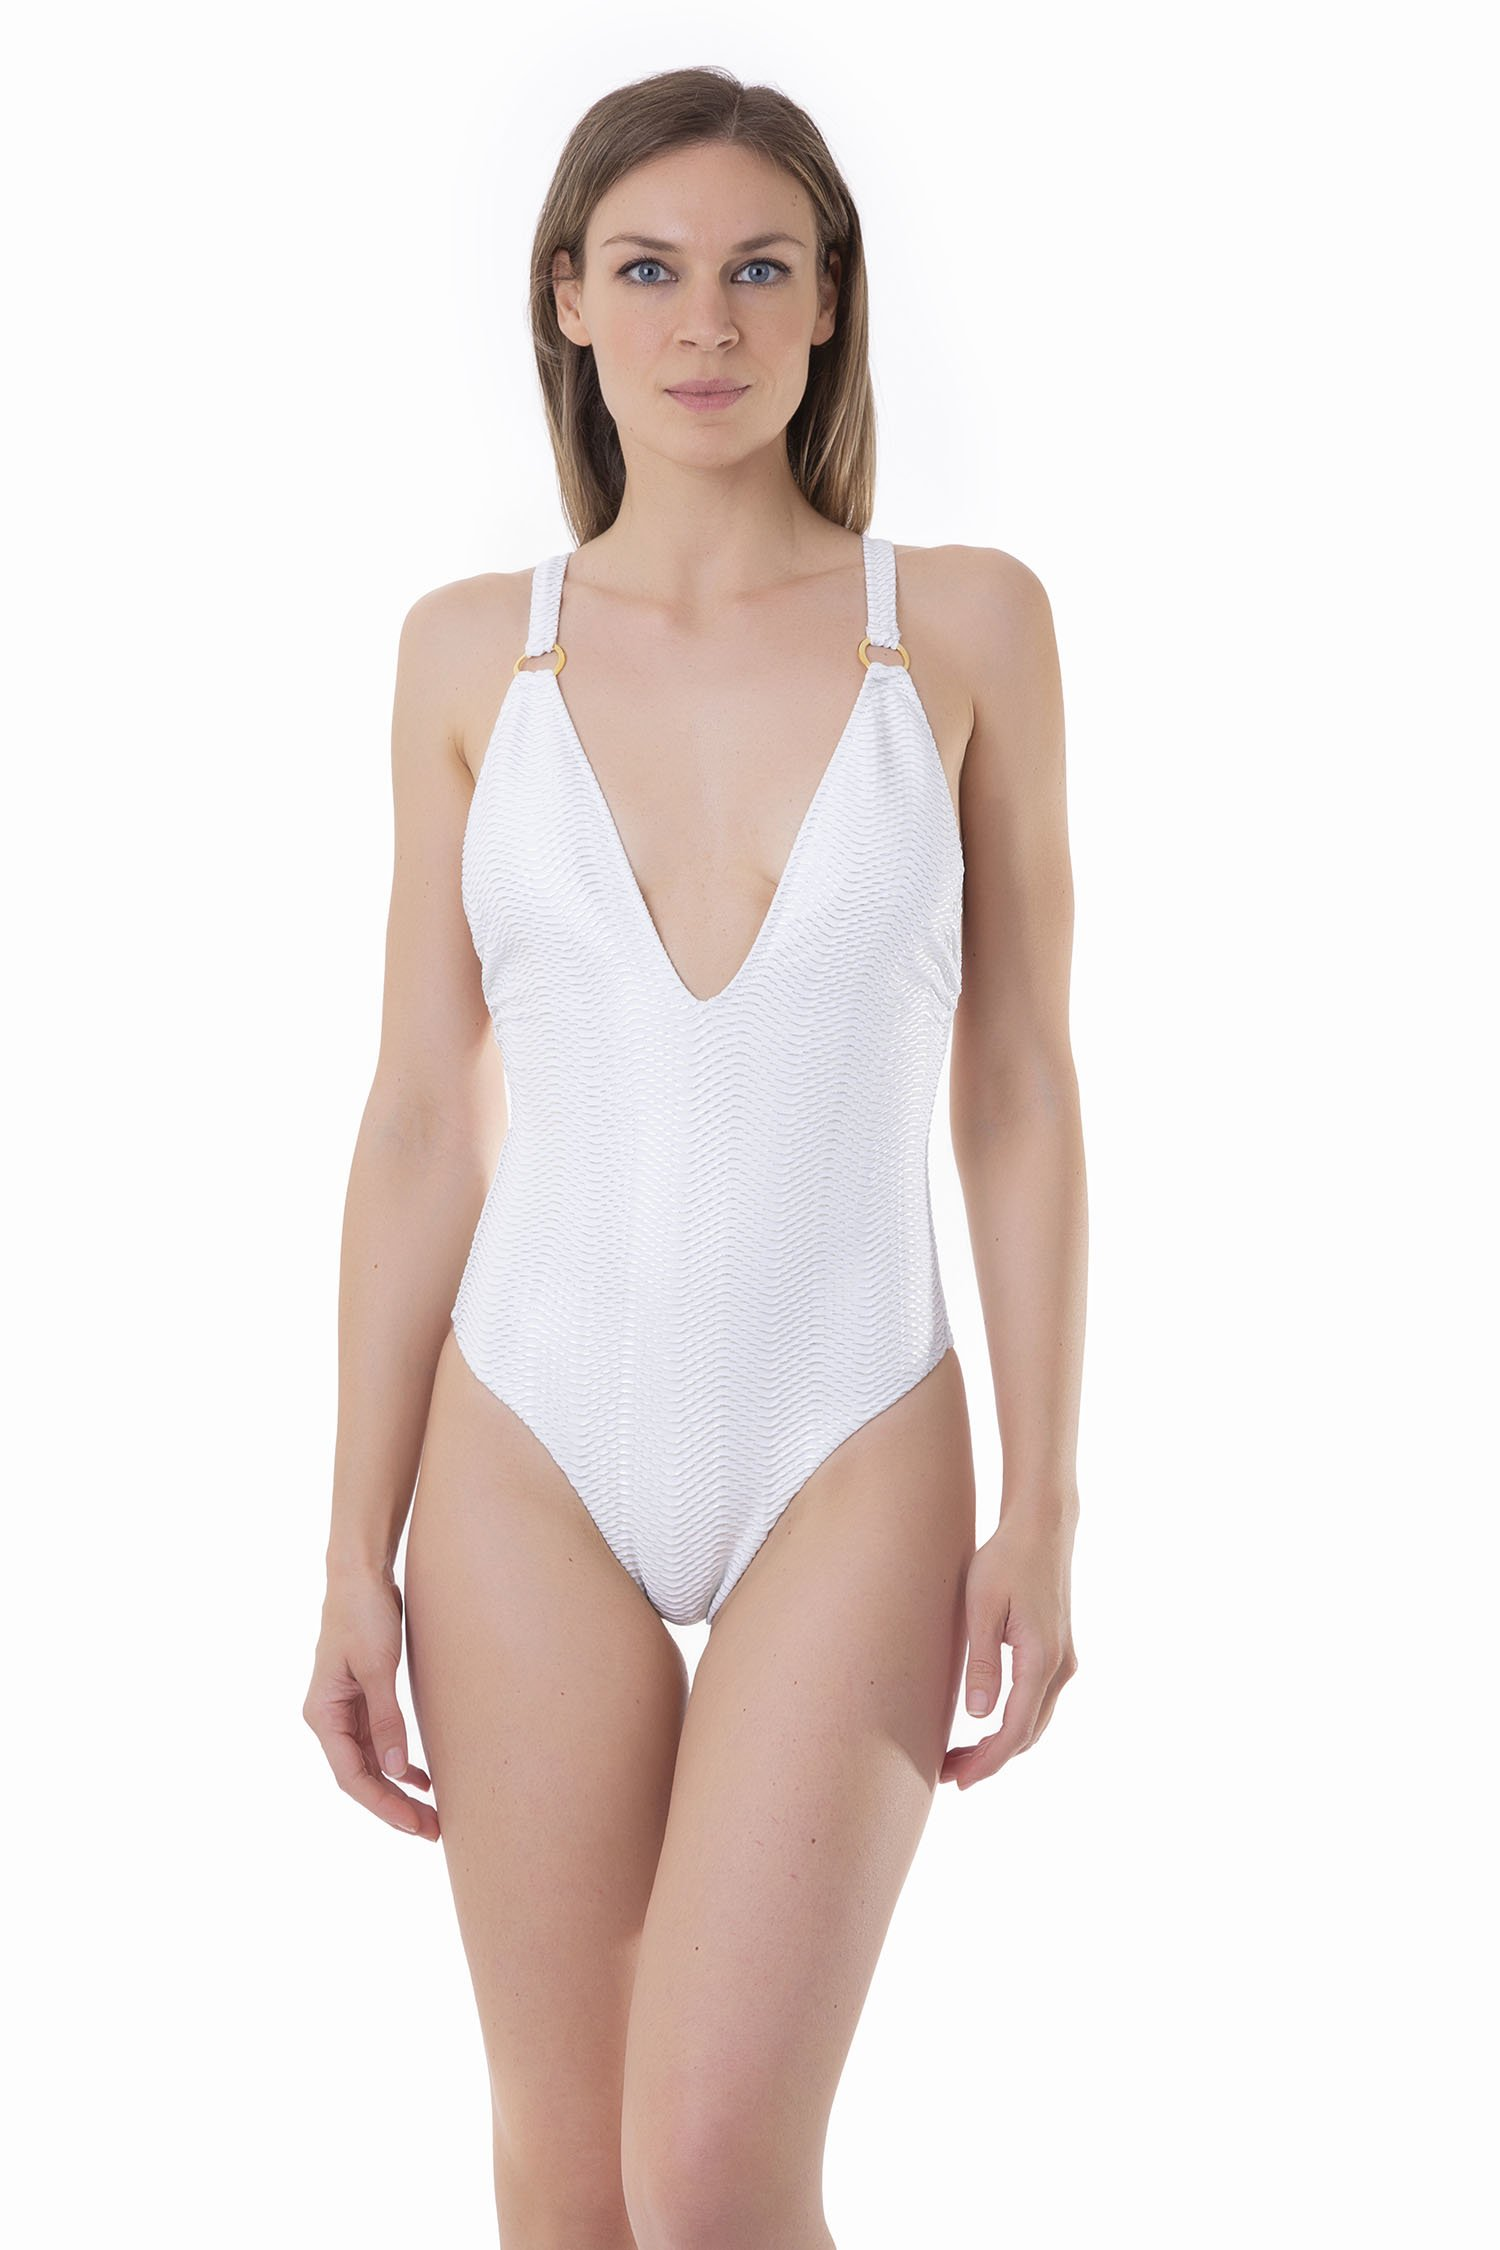 ONE-PIECE WITH DEEP V-NECKLINE - Microfibra Operata Splamata Bianco